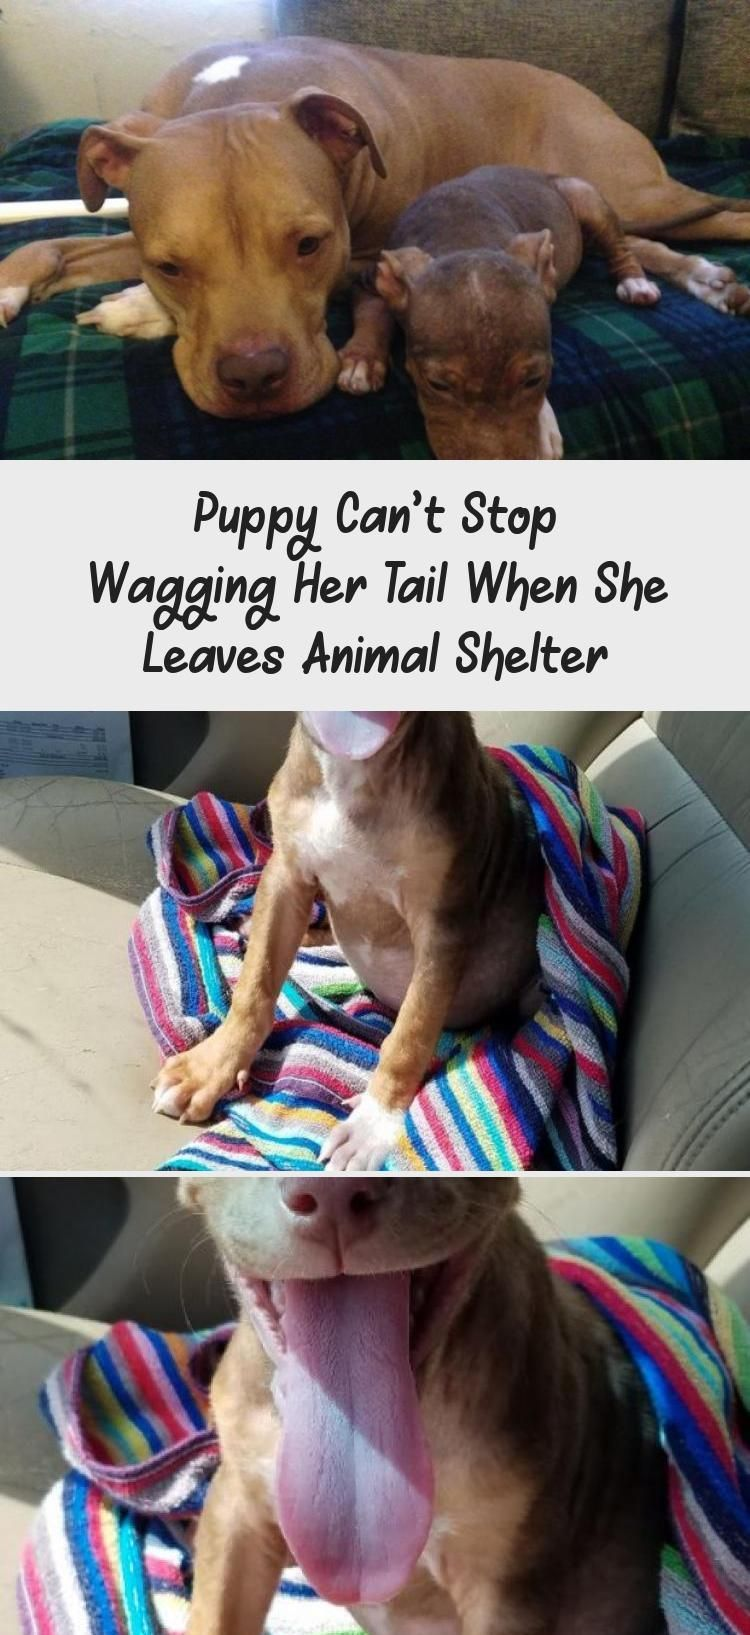 Puppy Can't Stop Wagging Her Tail When She Leaves Animal